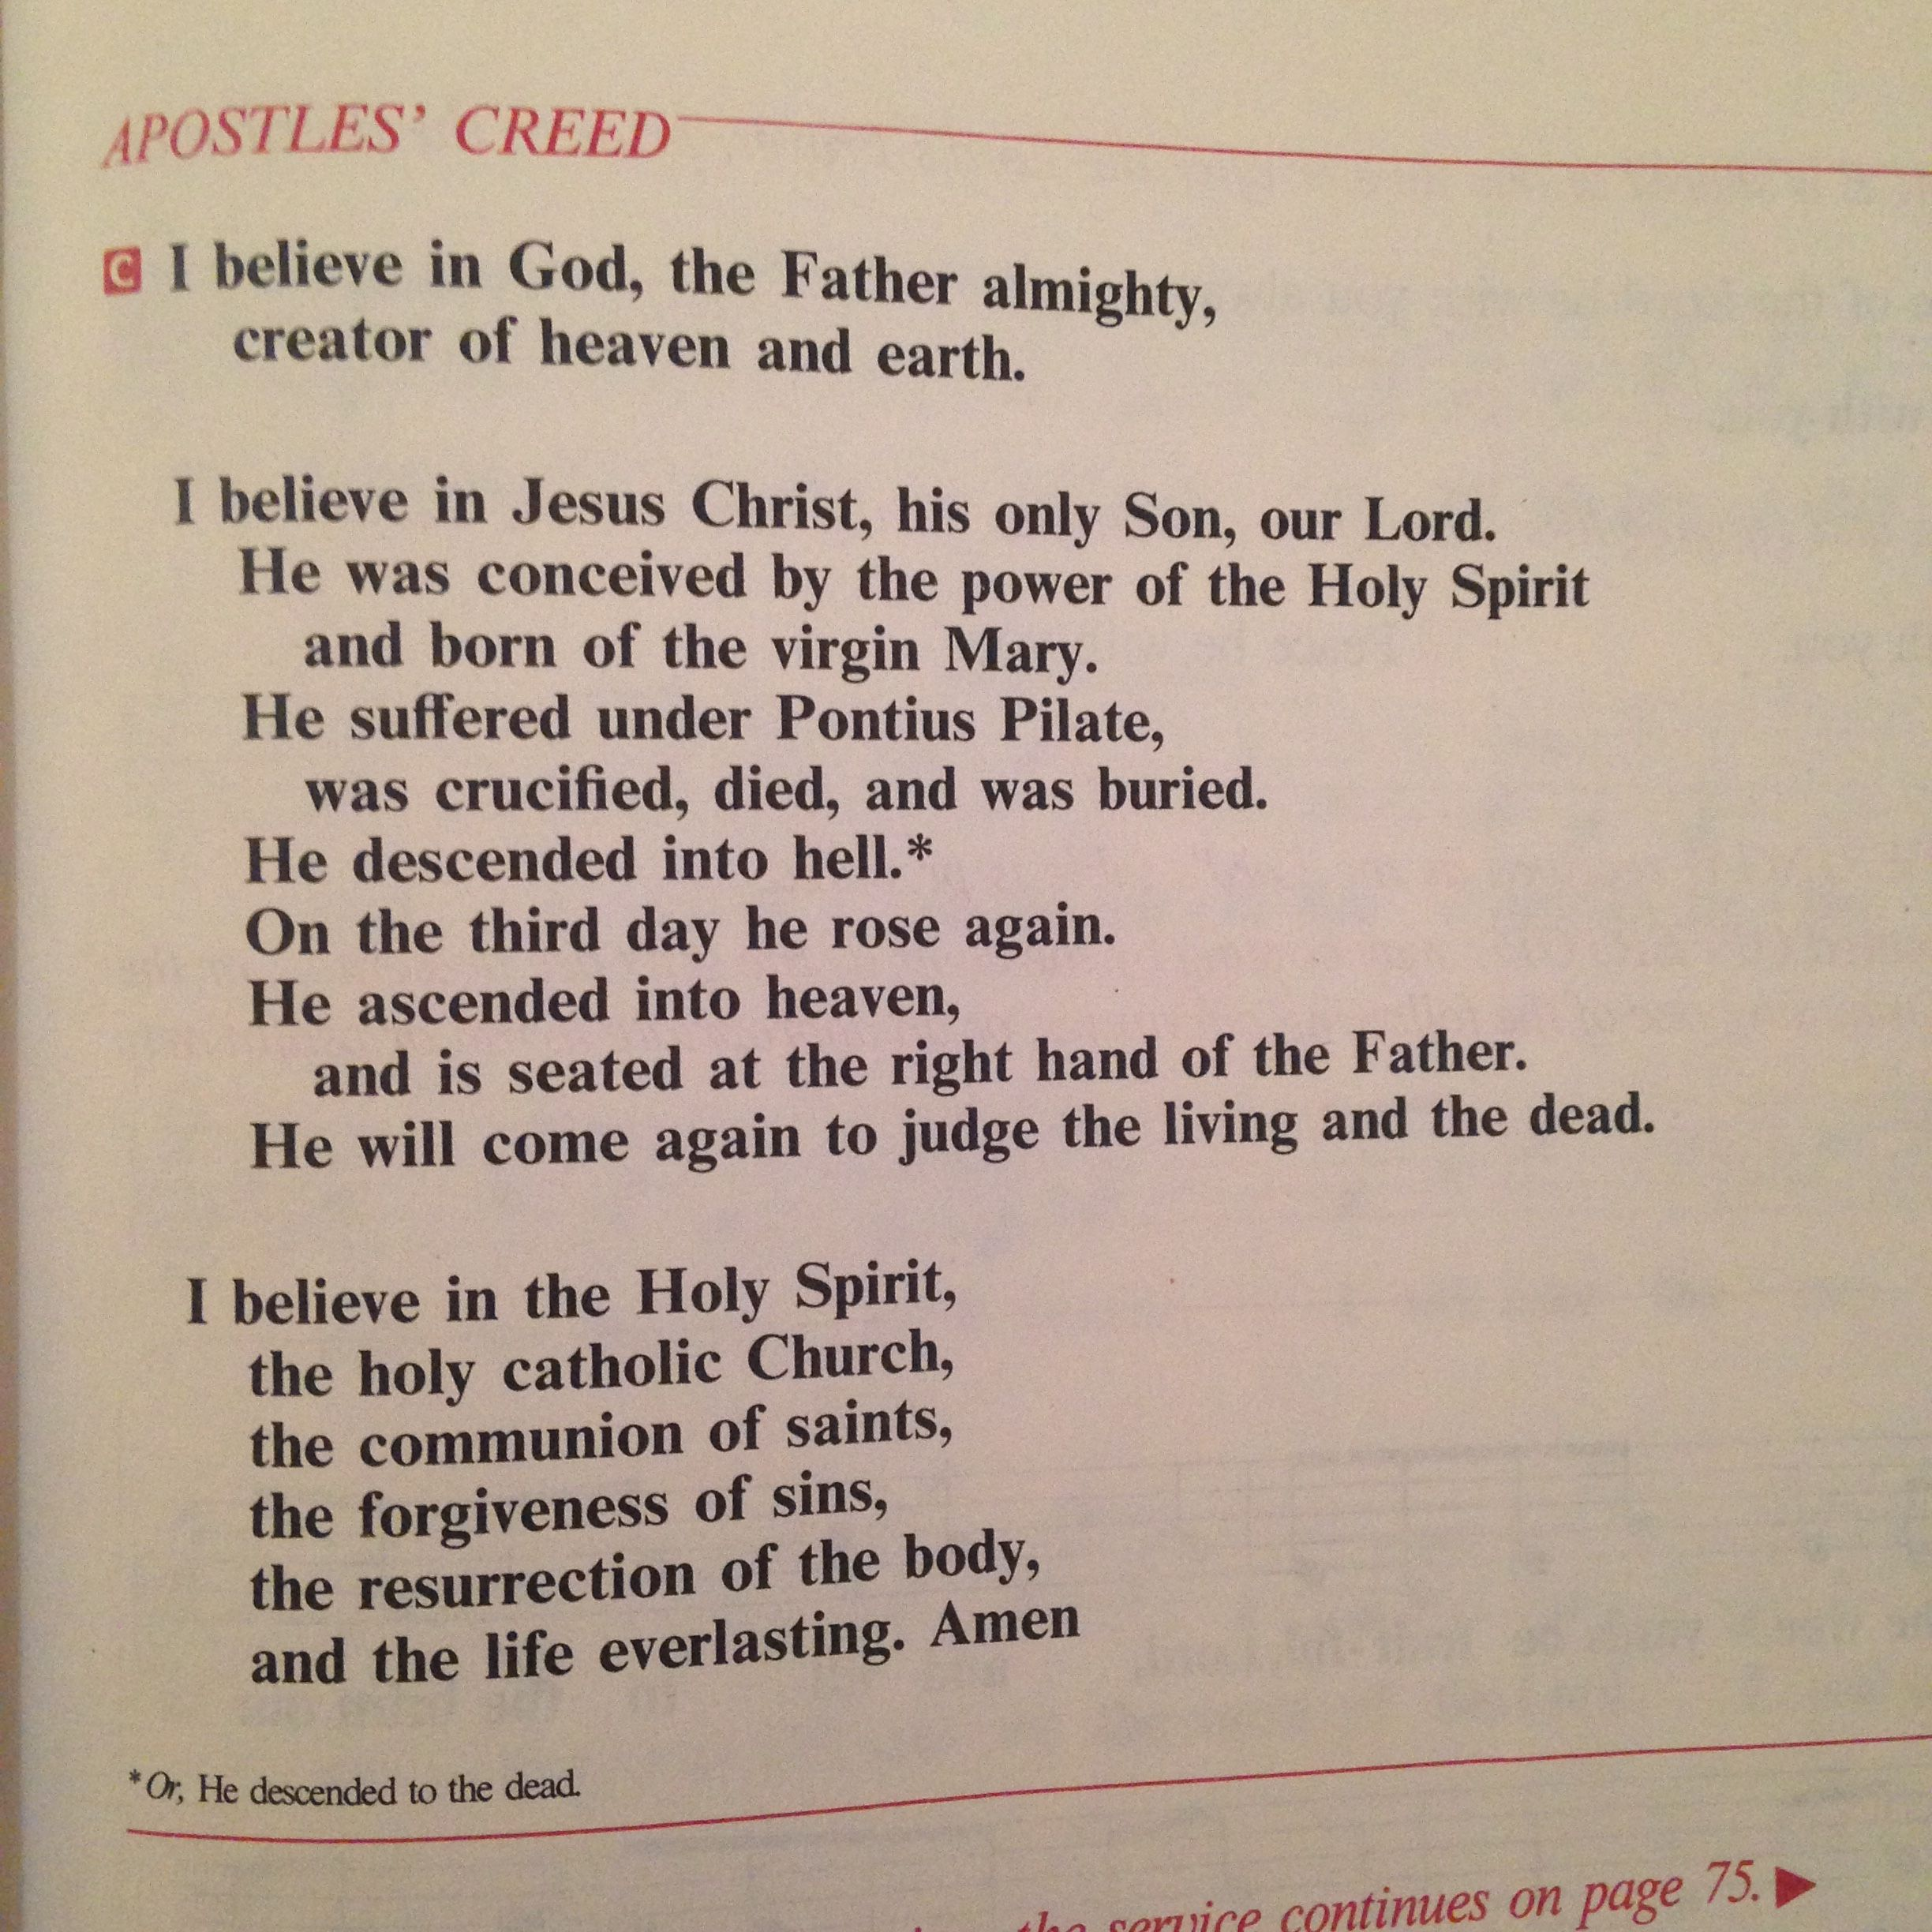 Apostles Creed From The Lutheran Hymnal I Used Growing Up